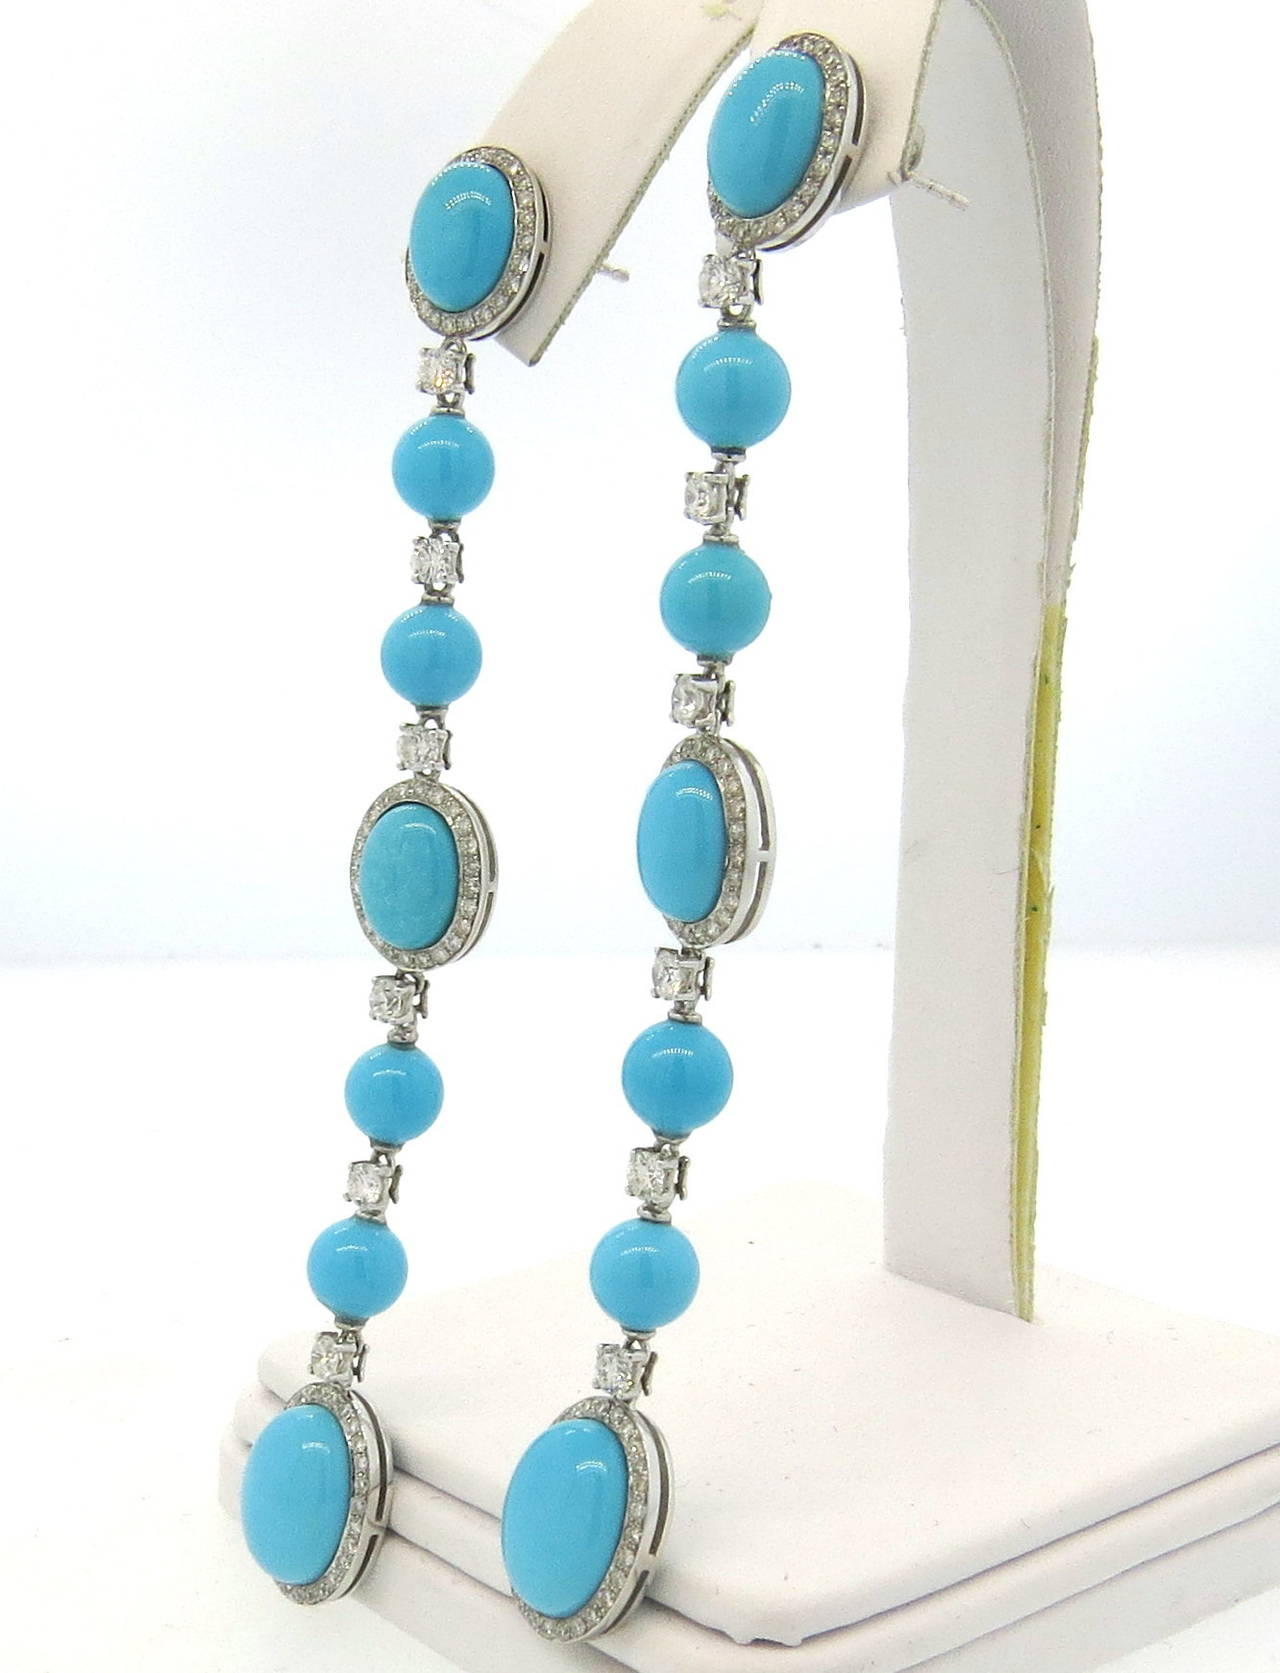 18k White Gold Long Drop Earrings Set With Turquoise Gemstones Decorated Roximately 1 80